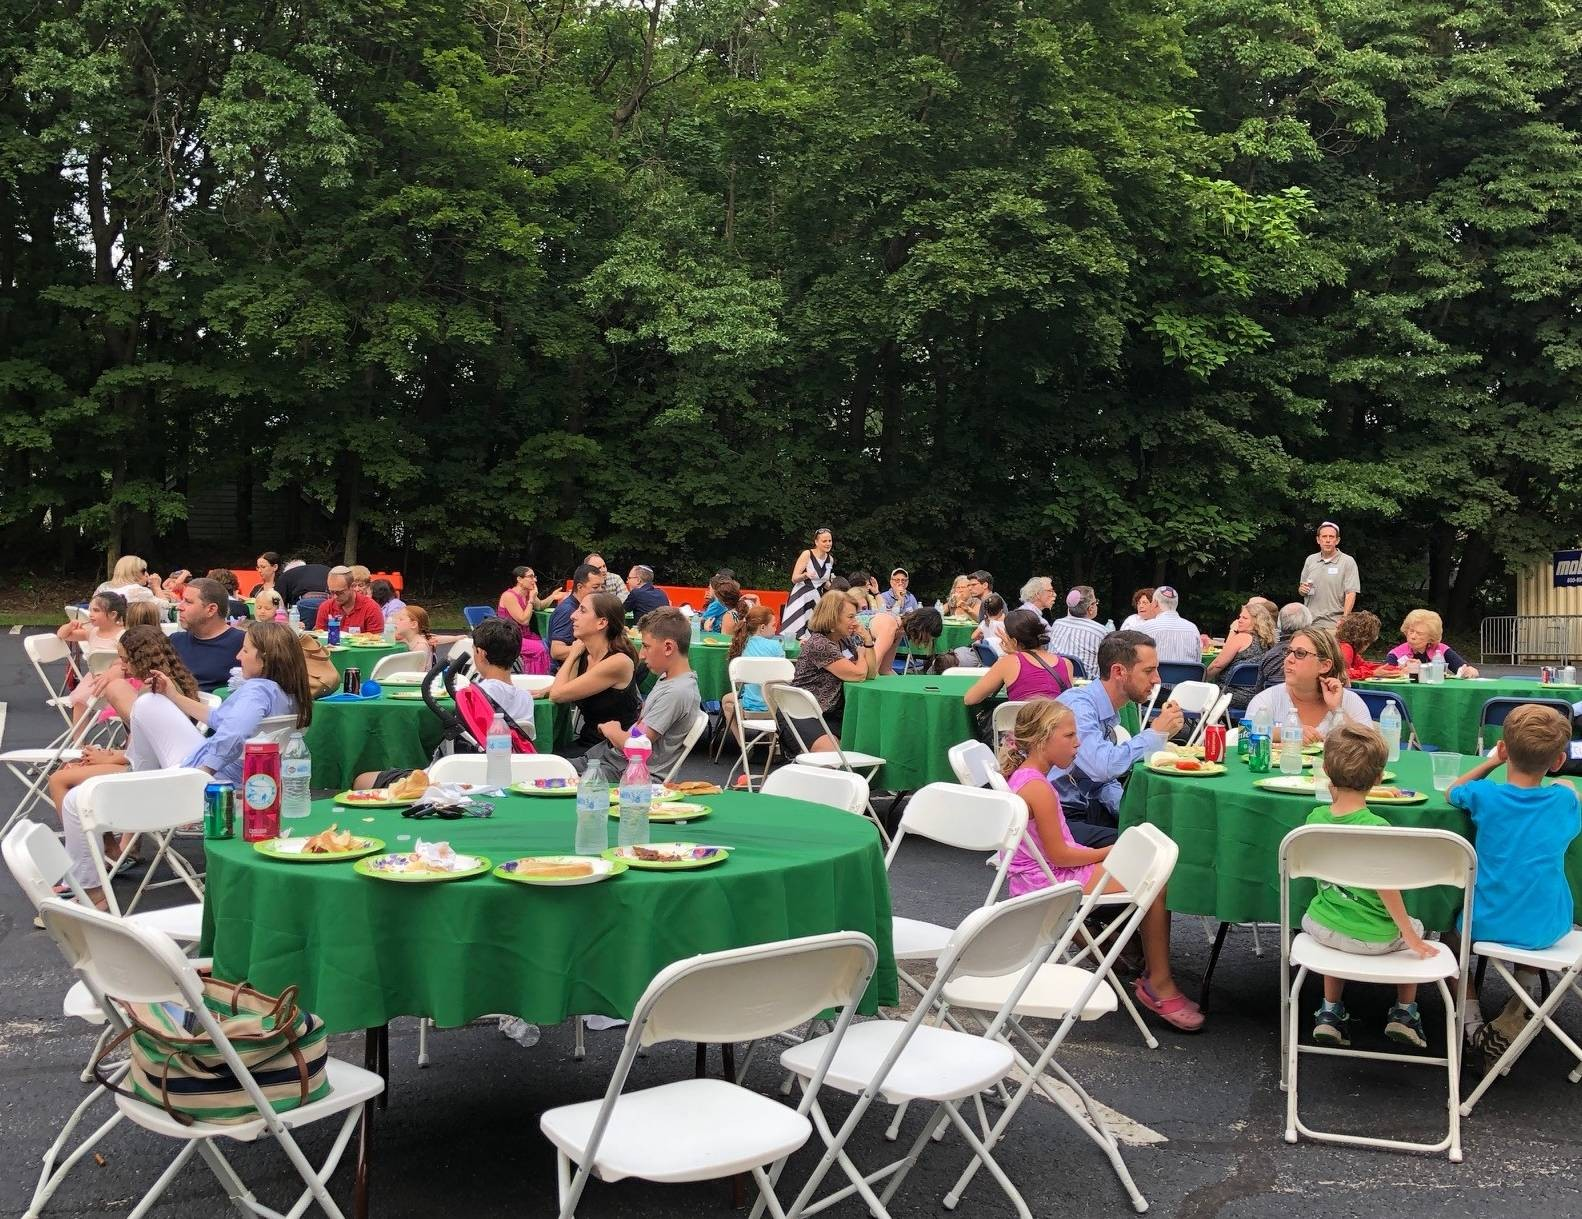 The Annual GRJC BBQ and Friday Night Shabbat Under the Stars